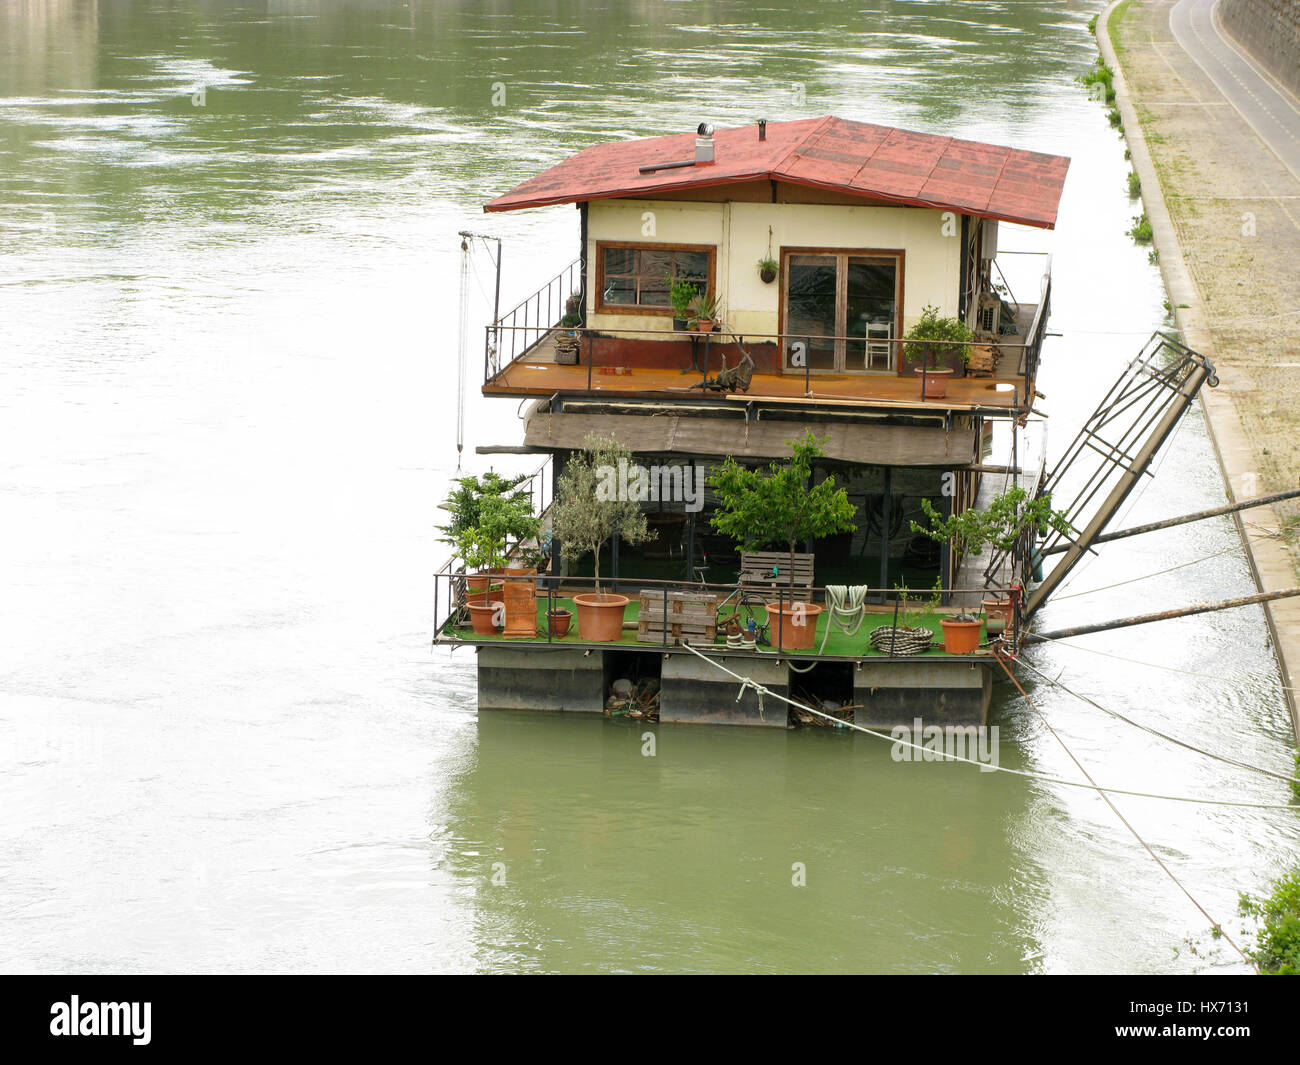 Tevere house - Stock Image